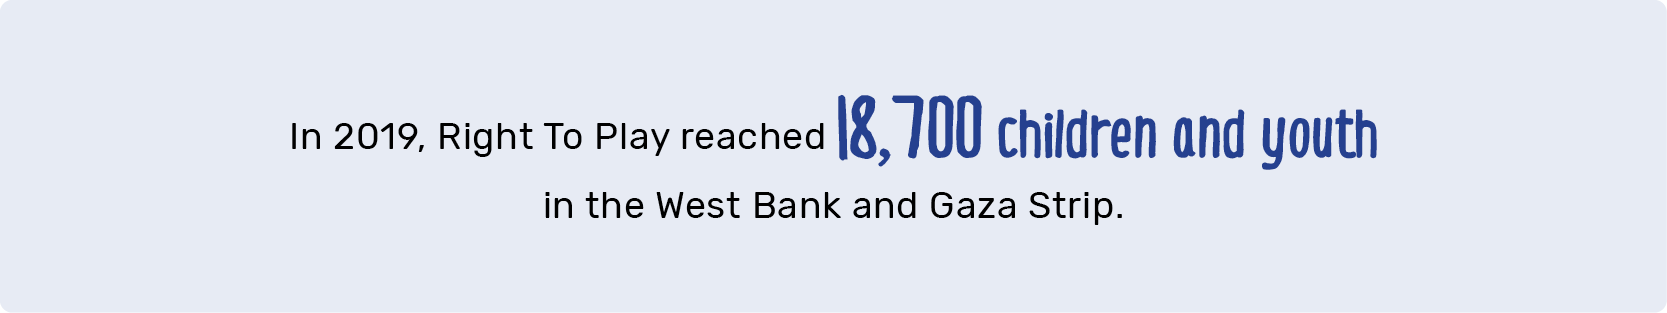 Palestine - Country Pages - Reach Stat.png